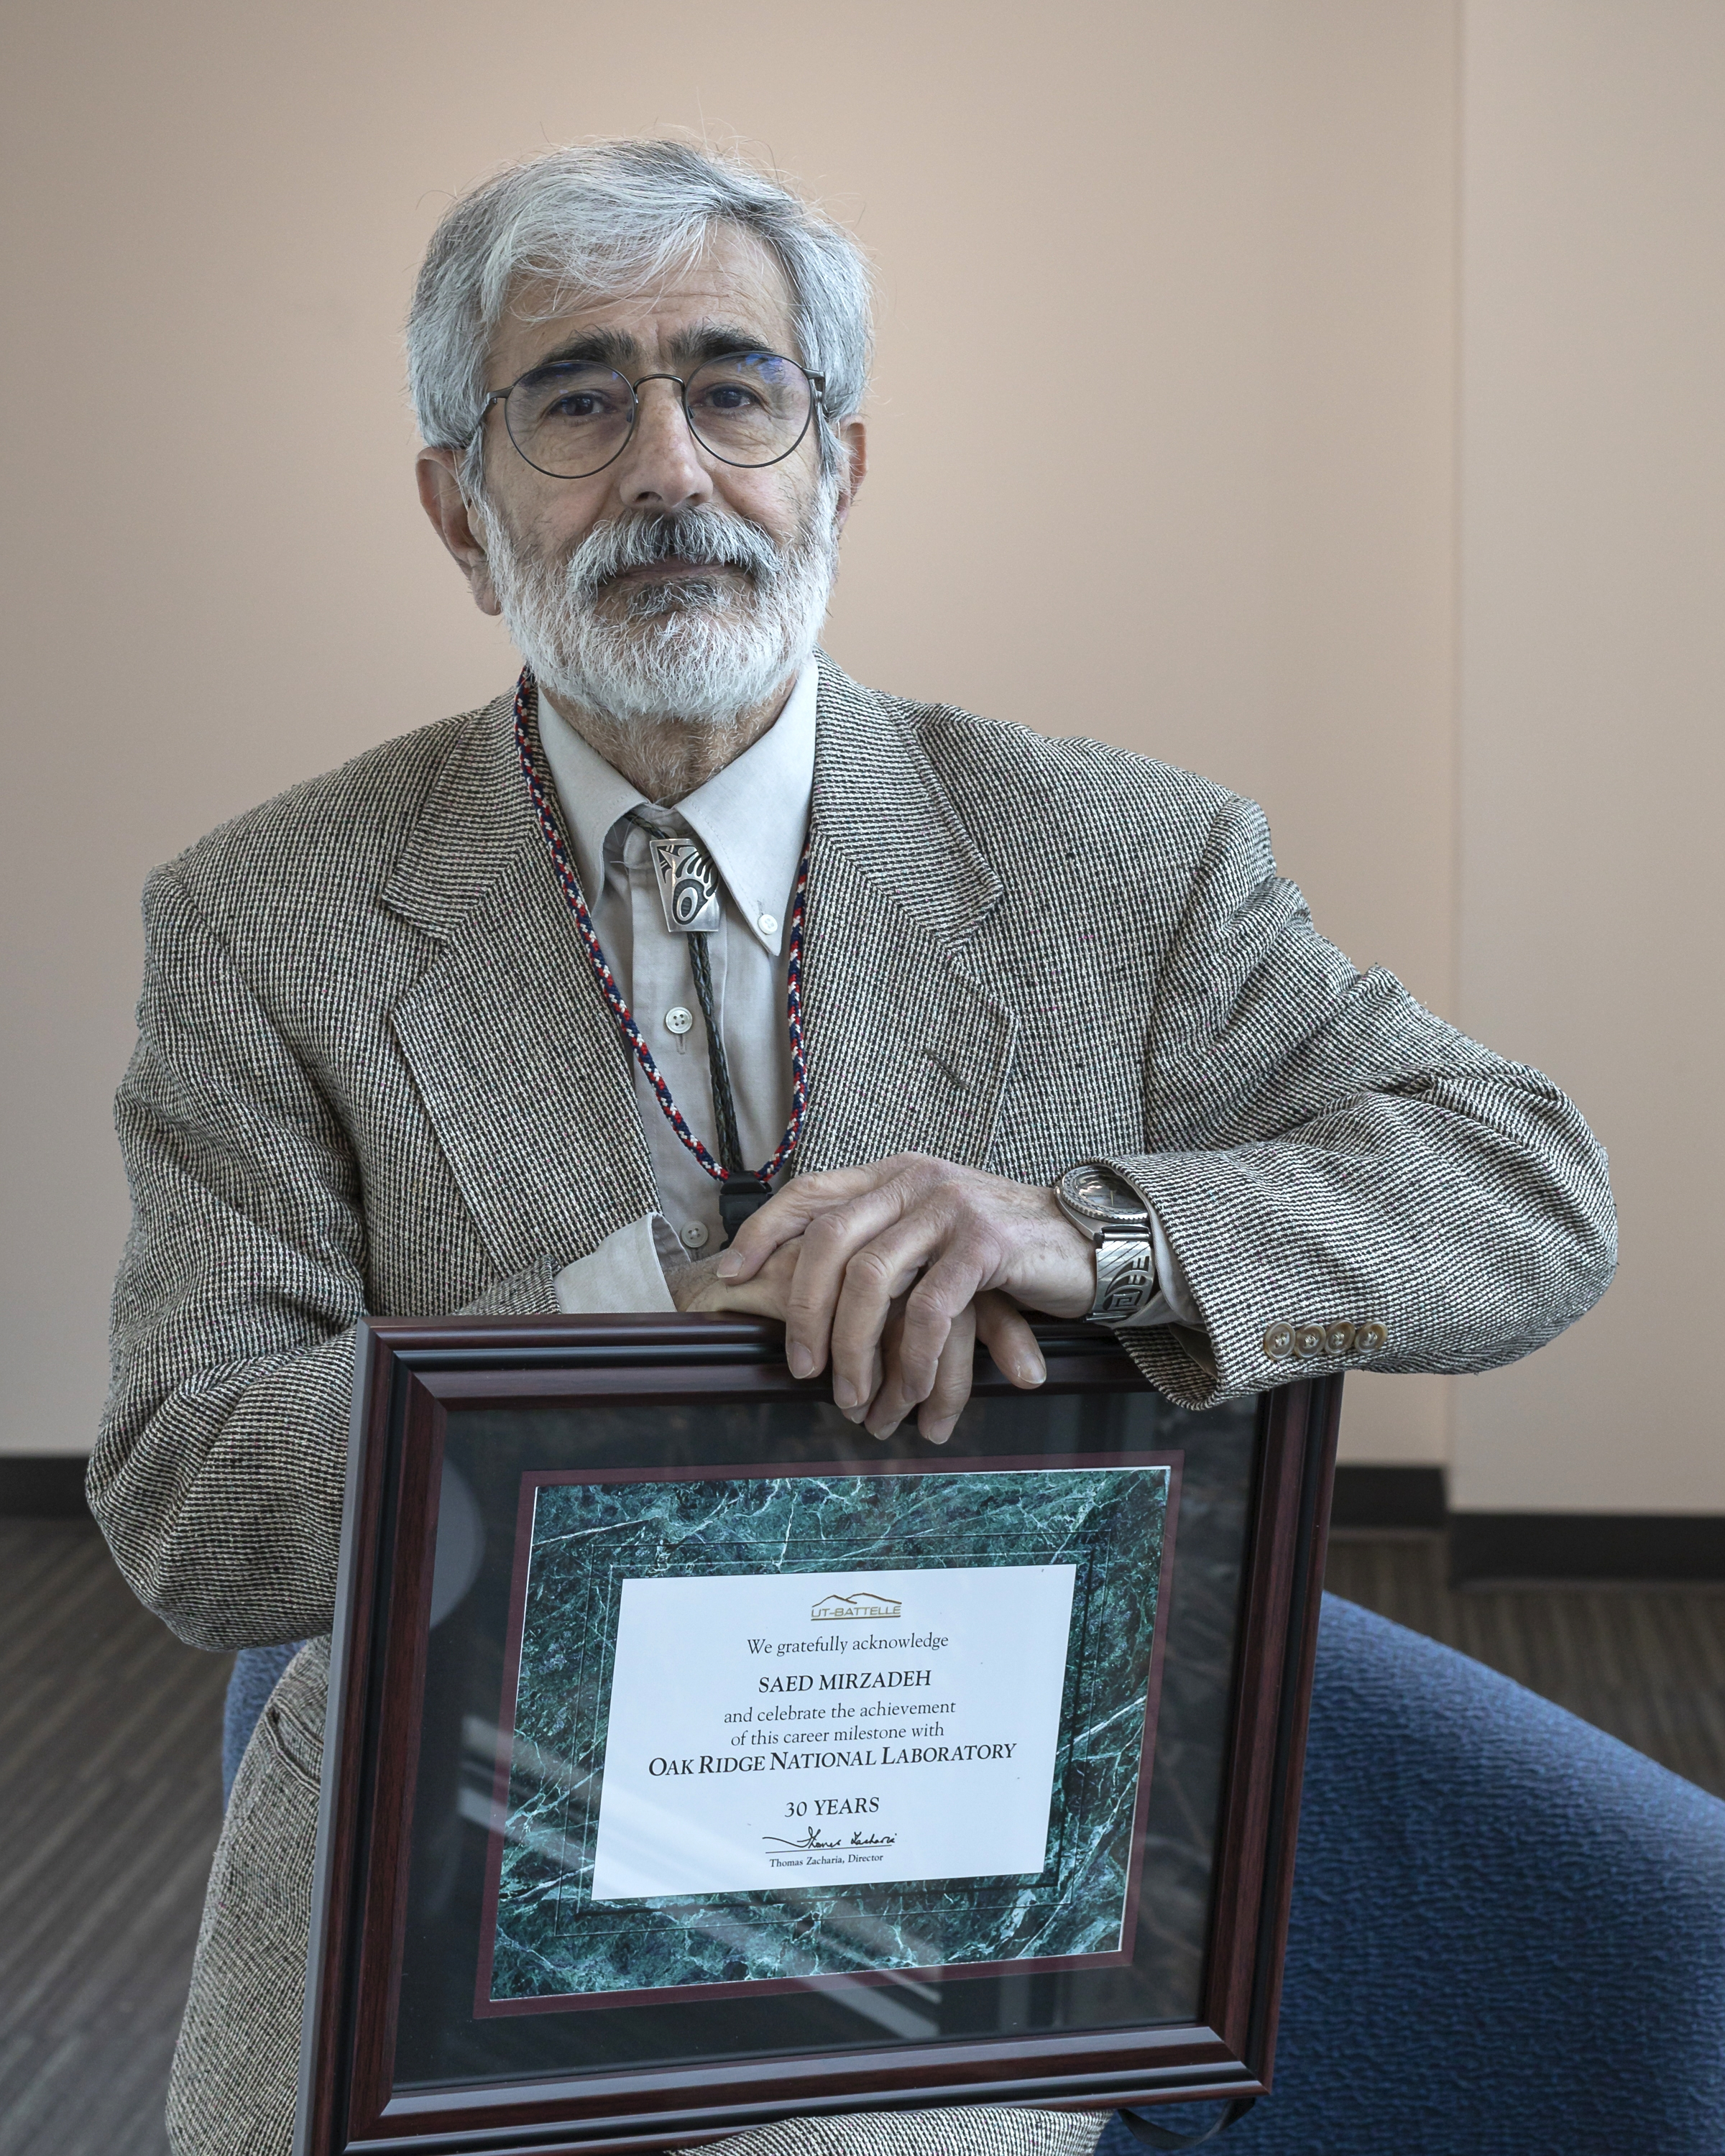 Saed Mirzadeh celebrates 30 years with ORNL